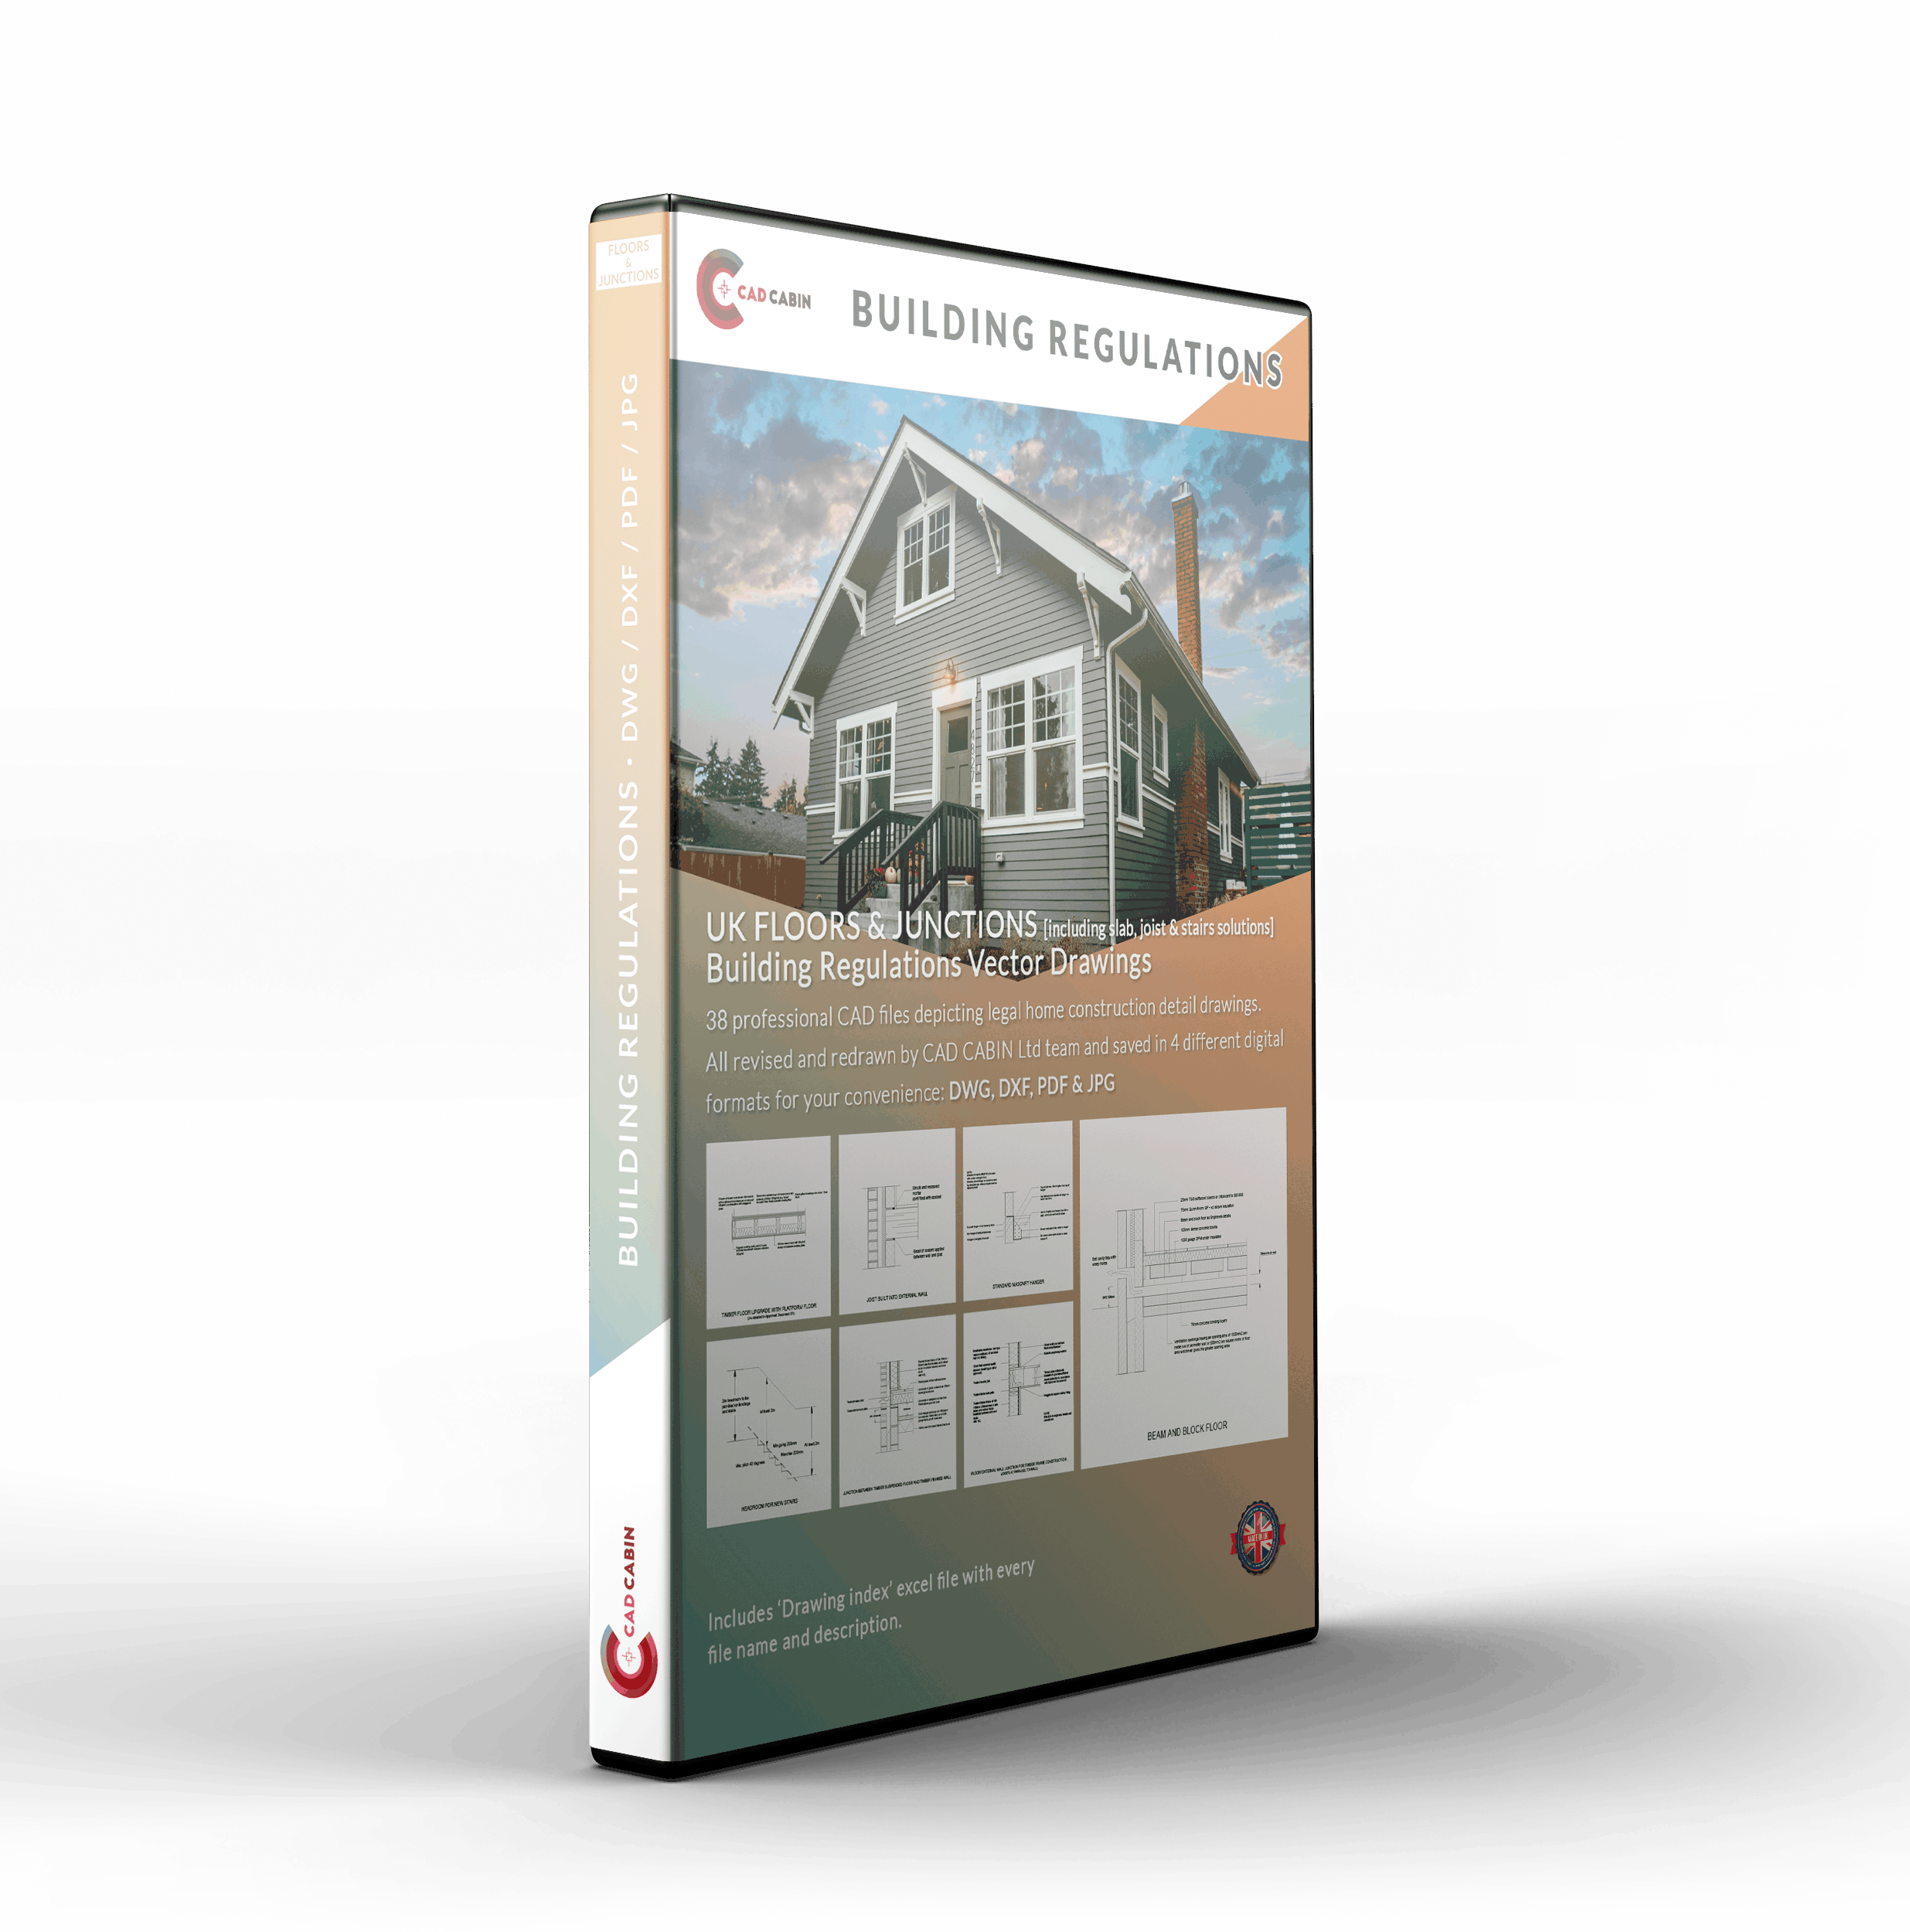 Floors & Junctions Building Regulation Drawings Pack